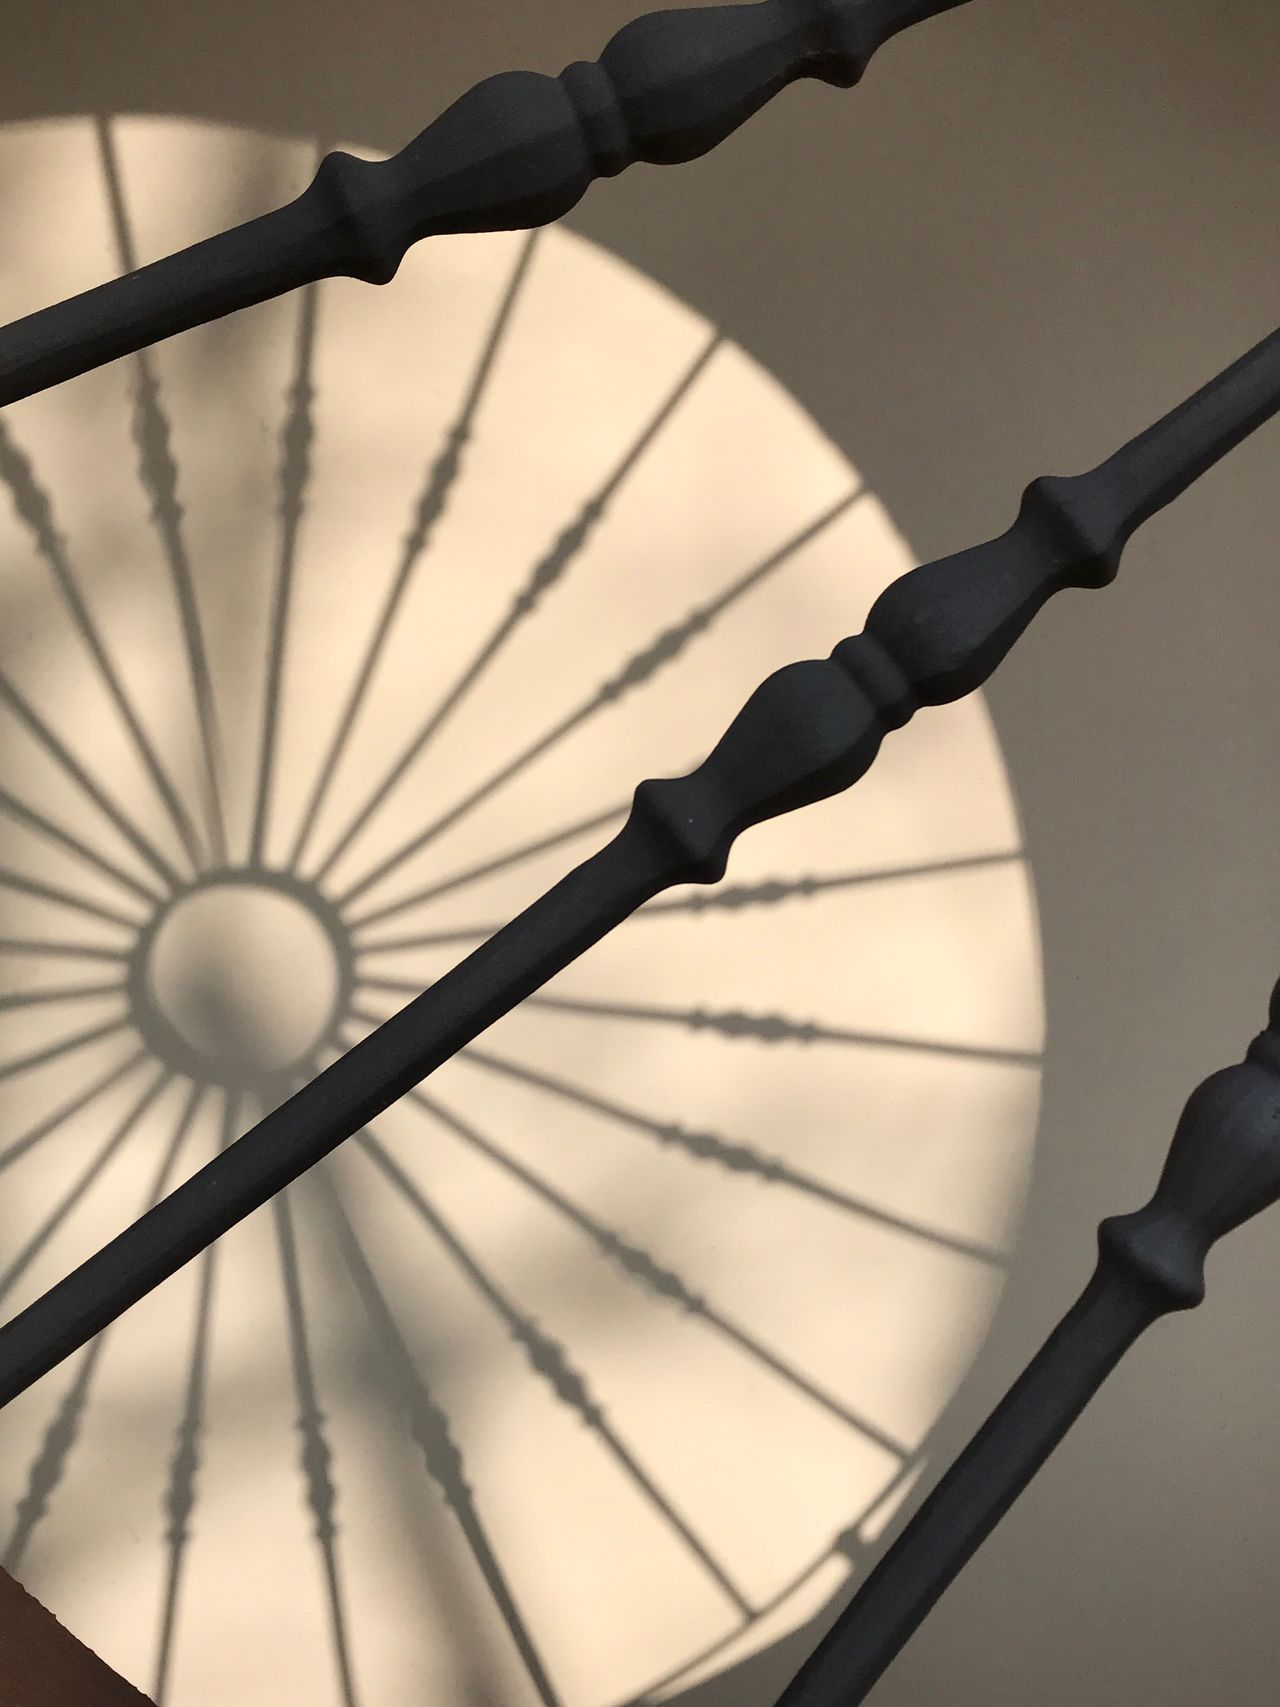 Shadows Shadows & Lights Architecture Architecture_collection Architectural Feature Decoration